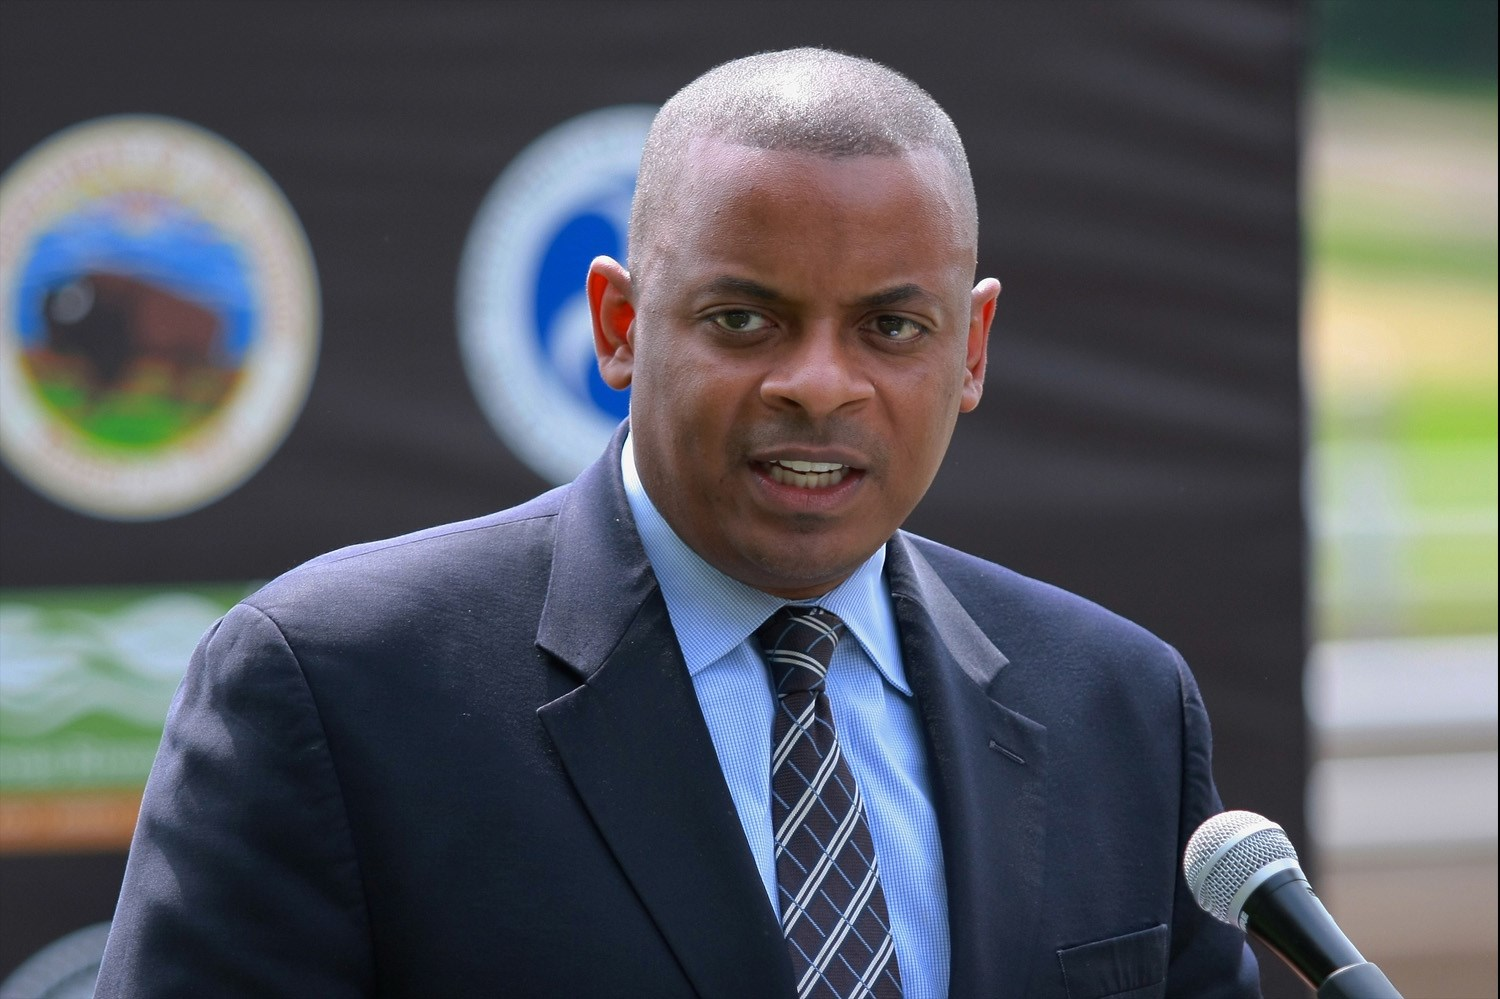 Secretary Foxx's Parting Gift for Trails and Active Transportation Could Impact America